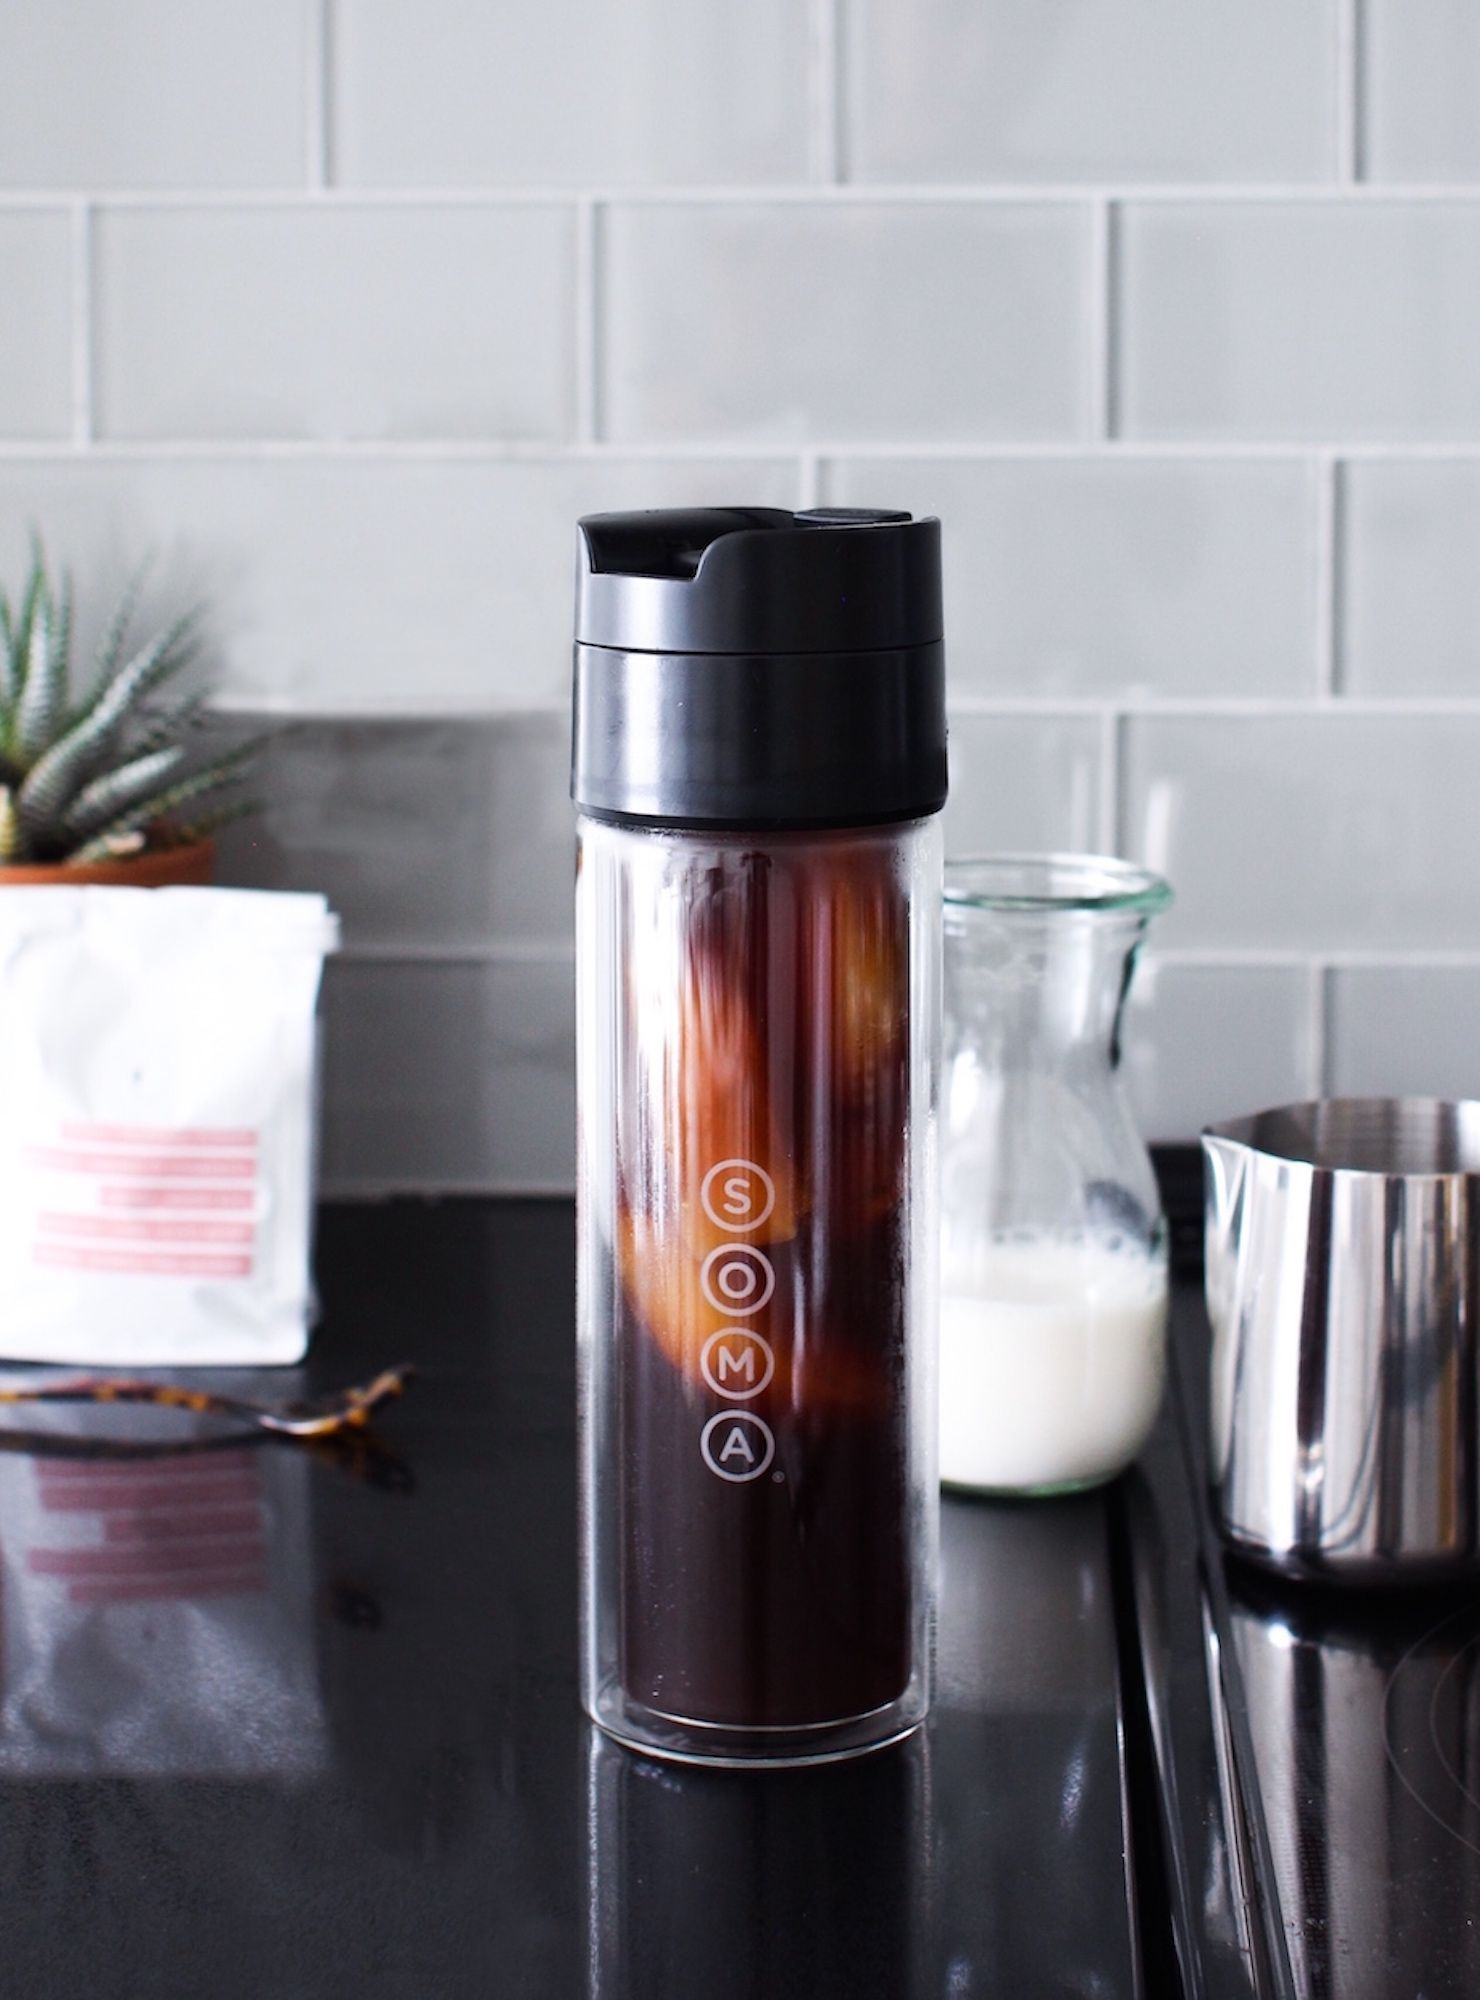 A Shop Guide To Making Iced-Coffee At Home (& Saving $$) #espressoathome A Shopping Guide For Making Iced-Coffee At Home (& Saving $$) #refinery29 #espressoathome